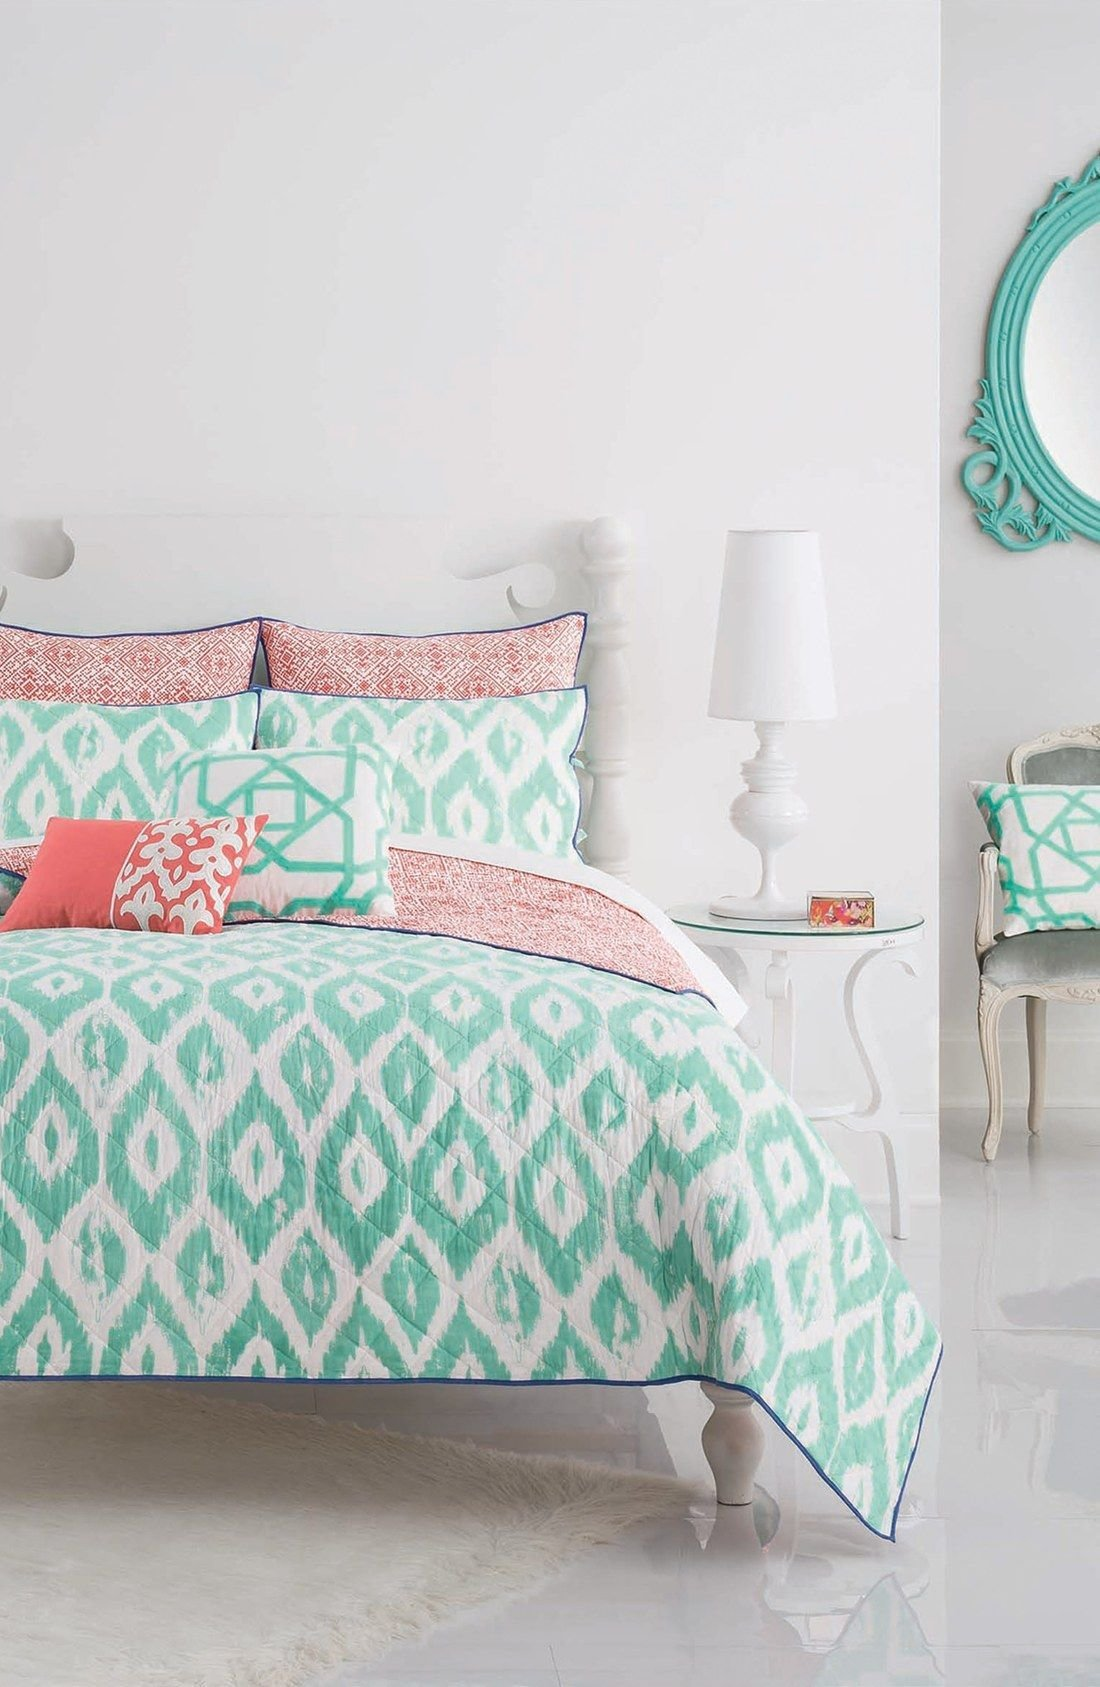 Best Loving The Turquoise And Coral Bedding Paired Together For With Pictures